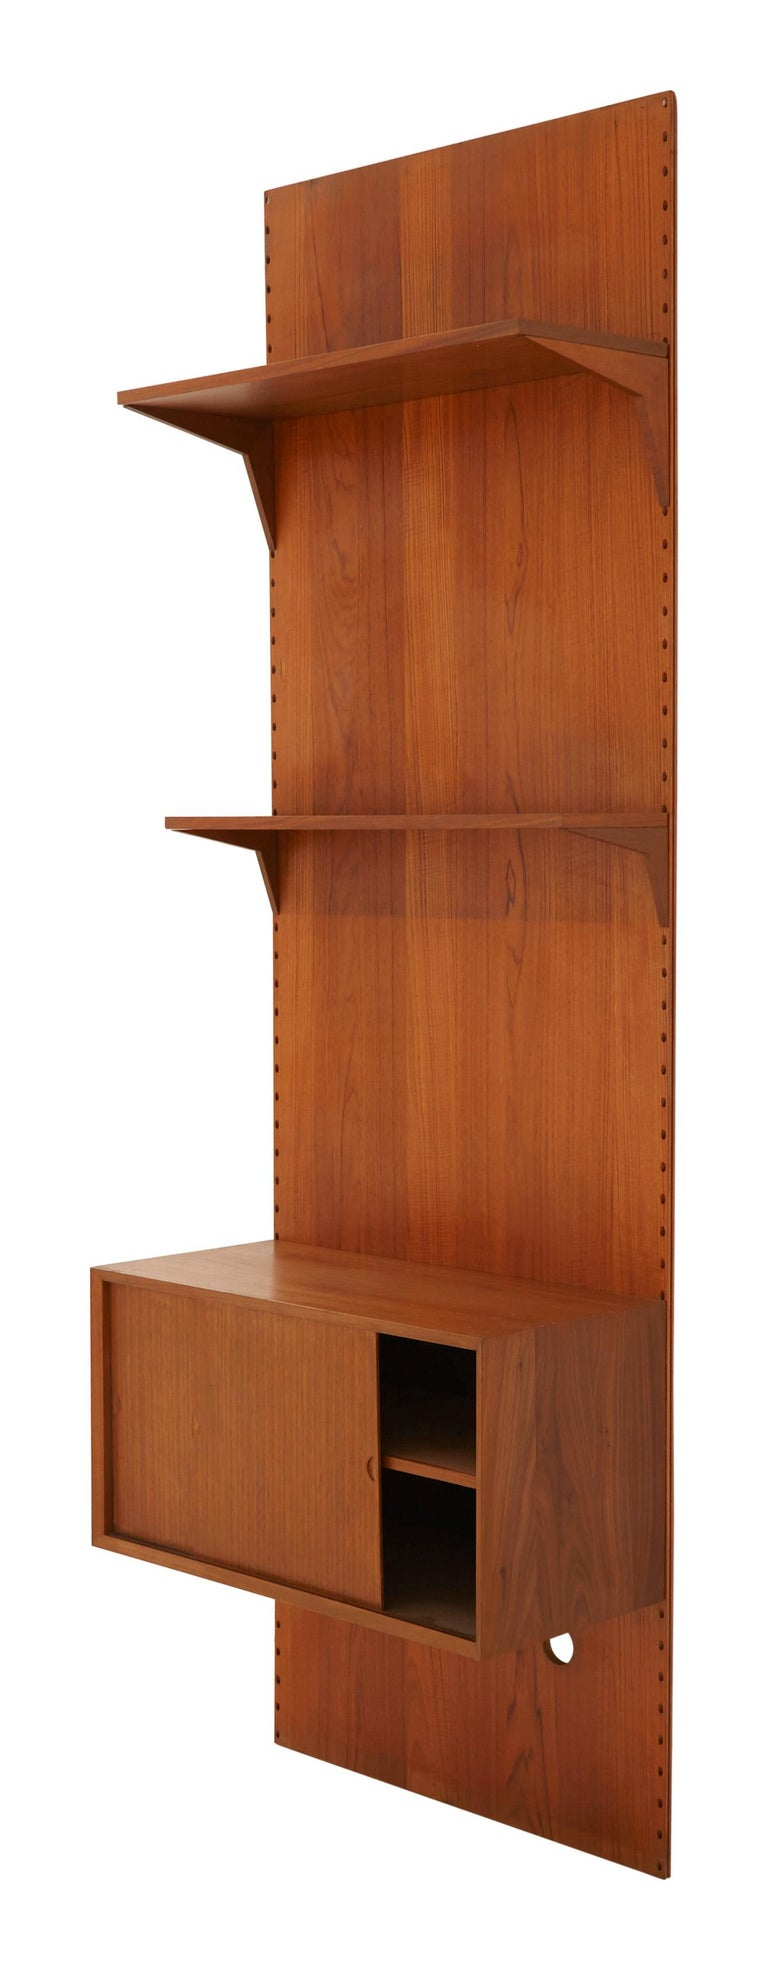 French Midcentury Teak Wall Shelving Unit For Sale